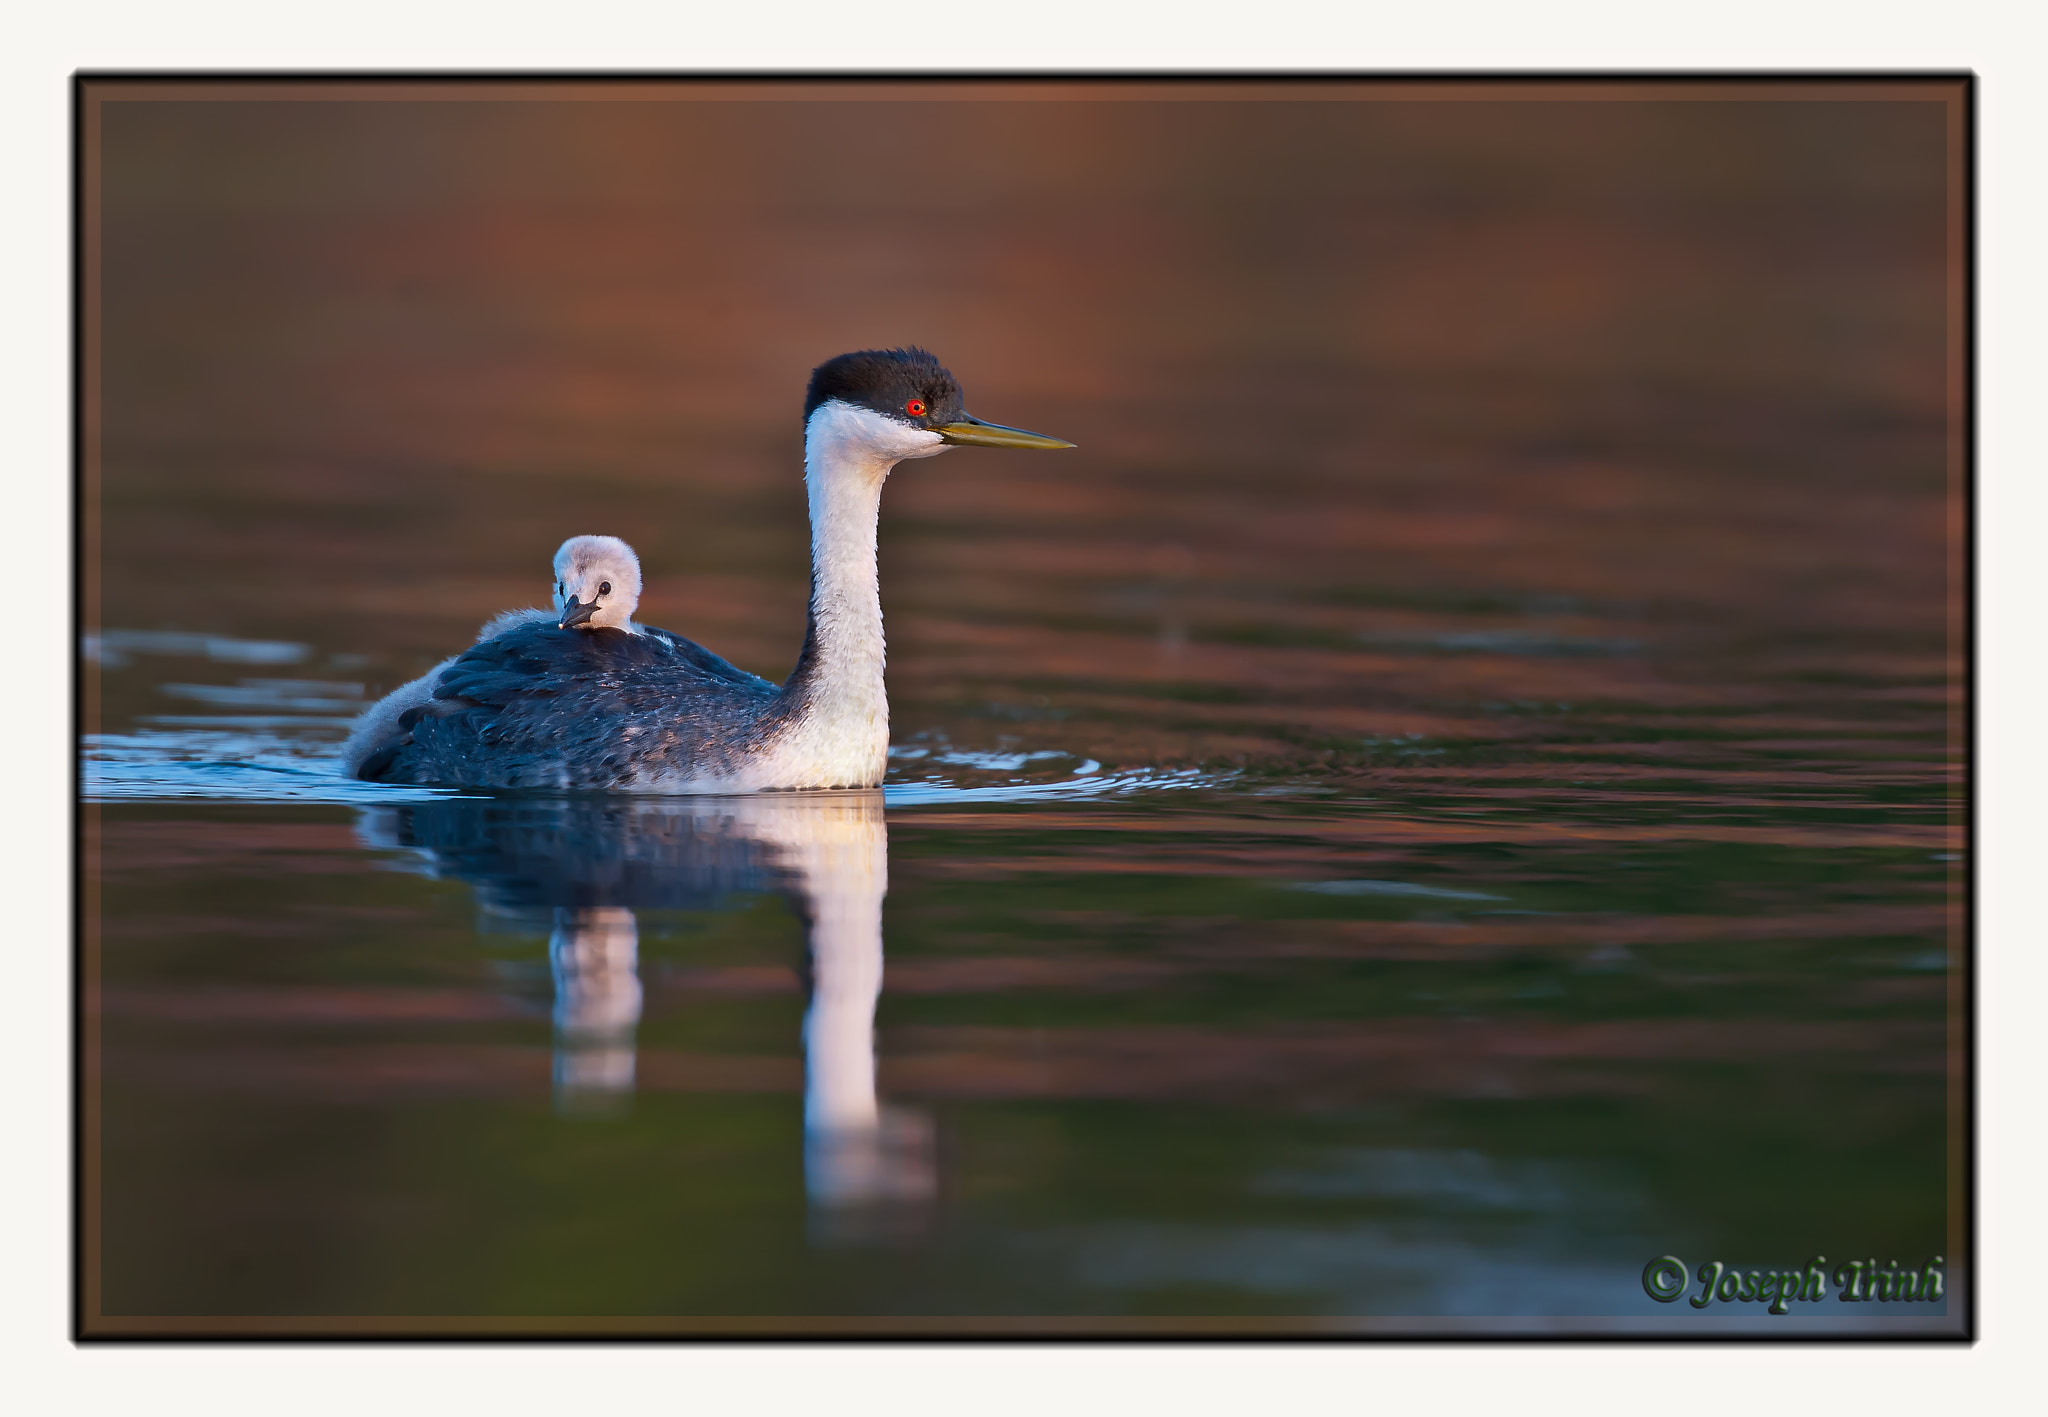 Photograph Riding On Mama's Back by Joseph Trinh on 500px